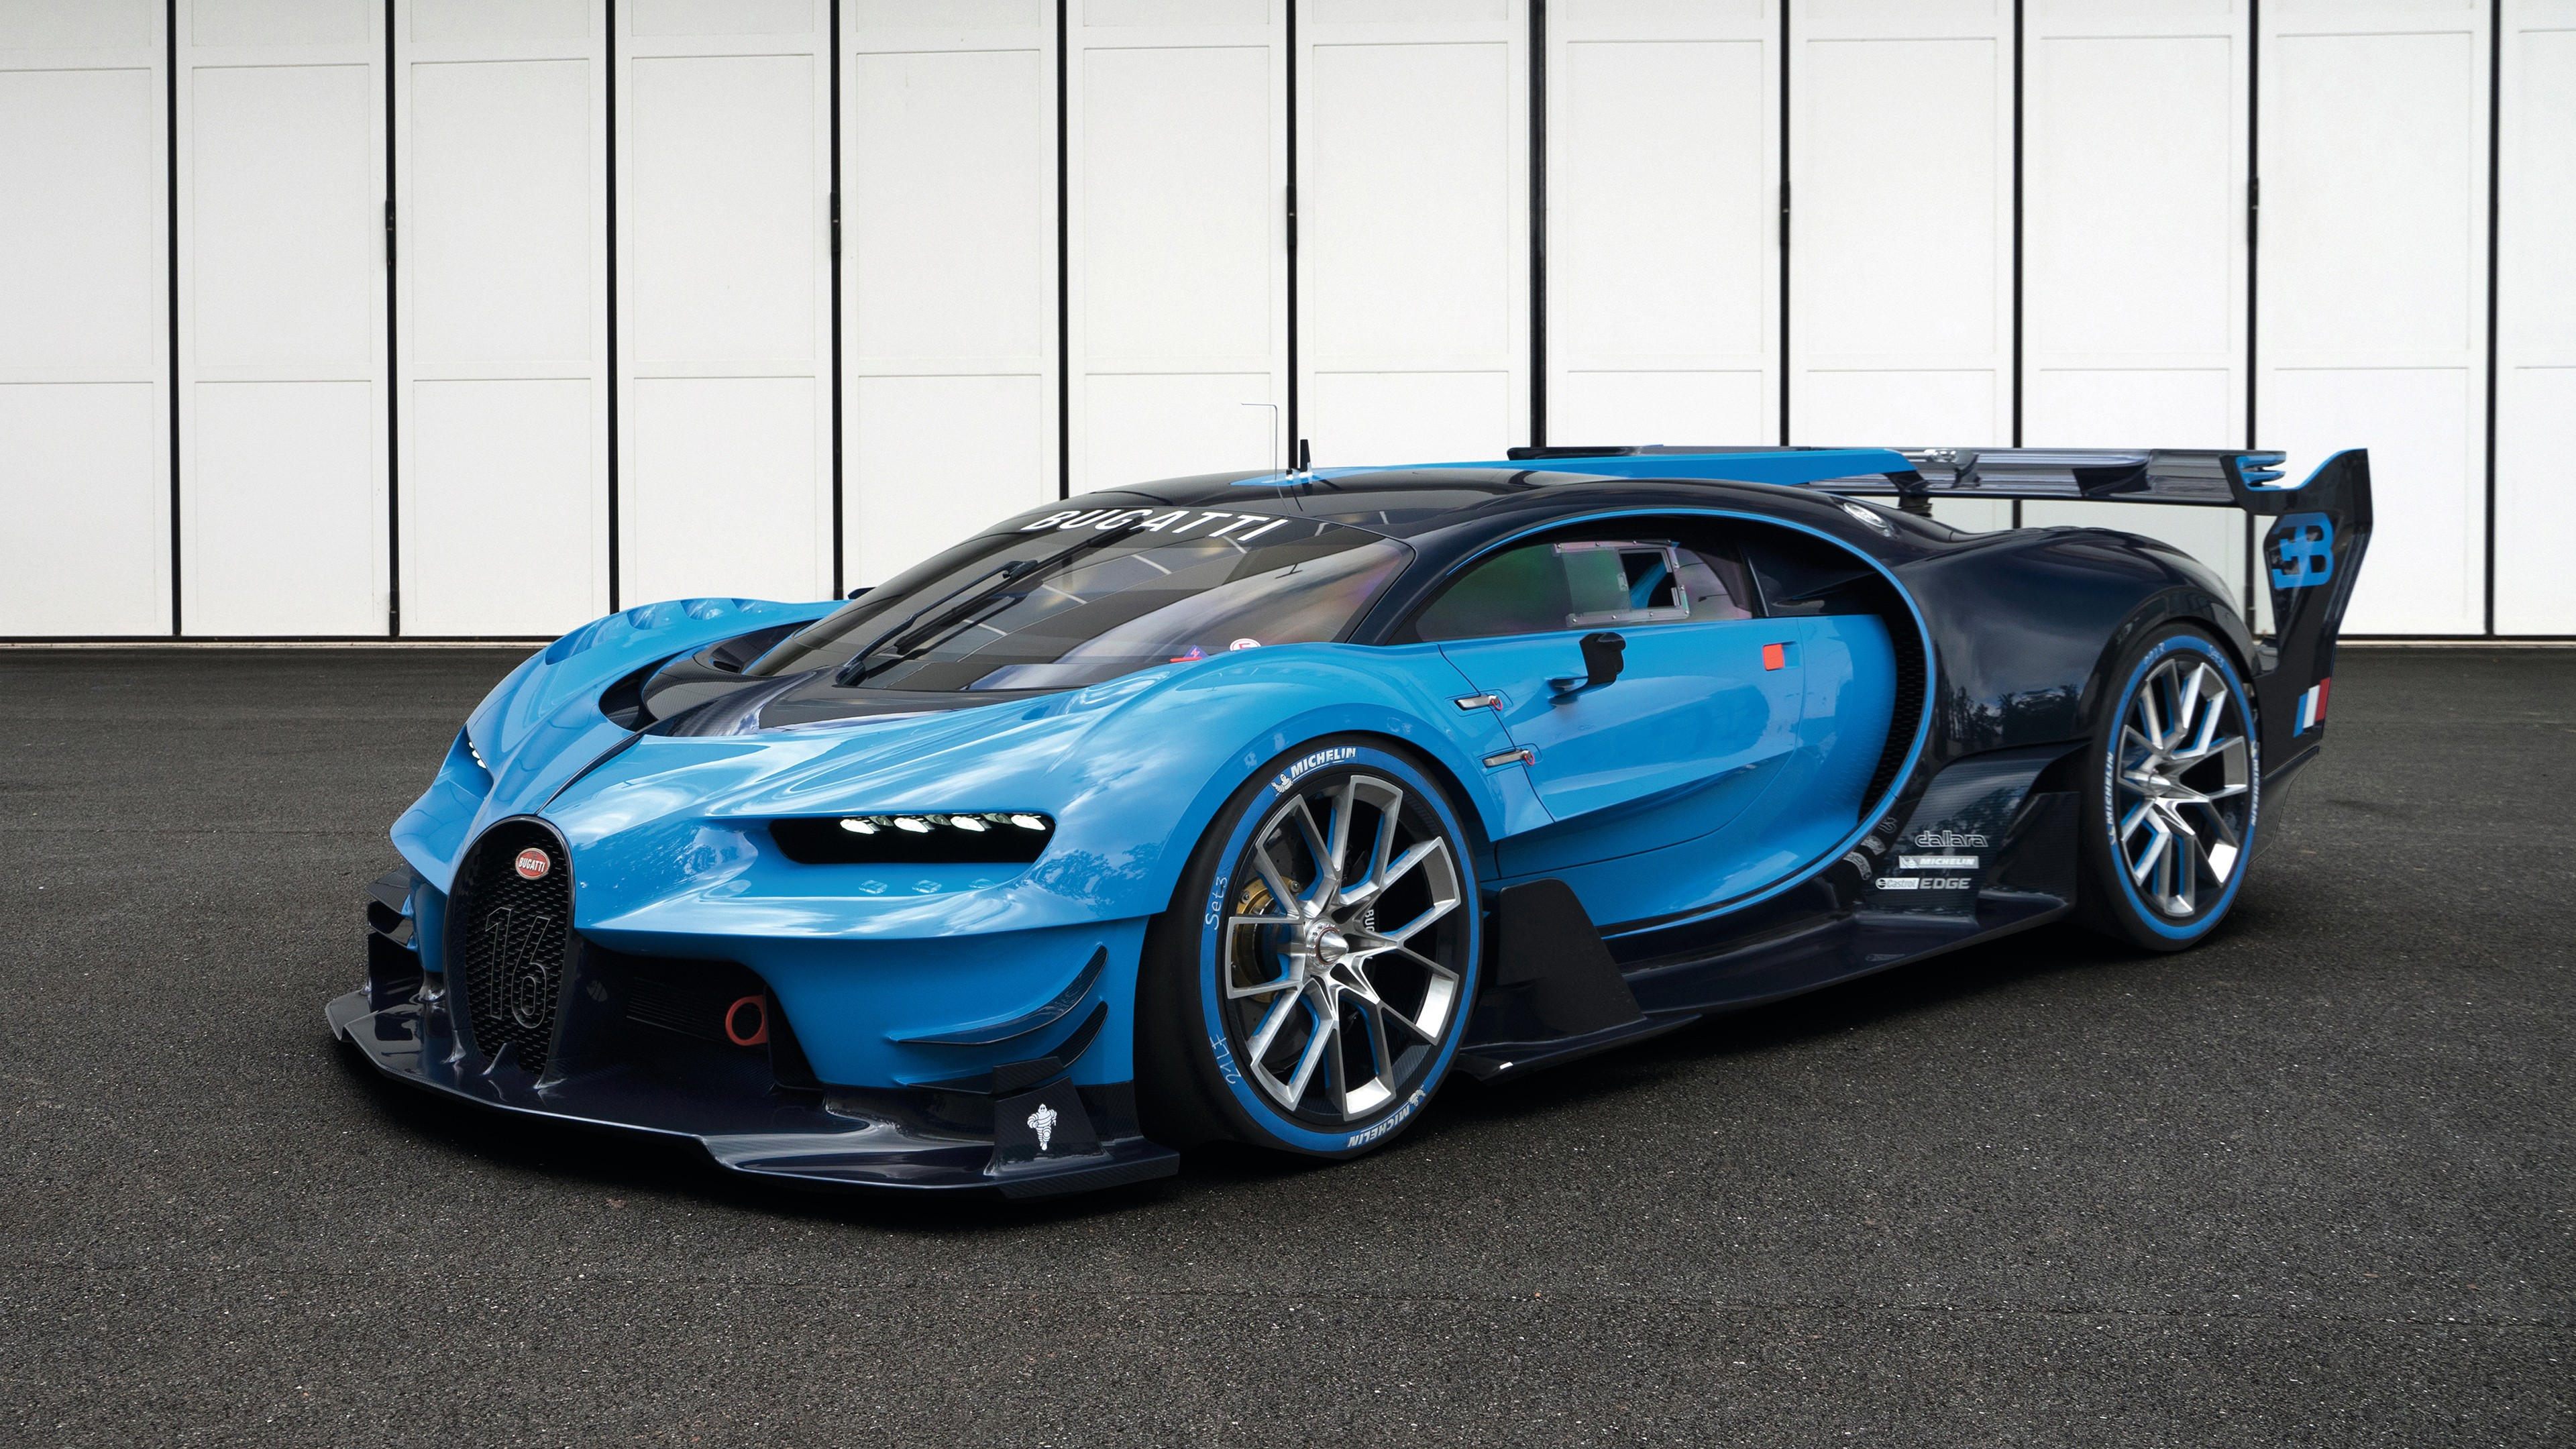 2015 bugatti vision gran turismo 3 wallpaper hd car wallpapers id 5726. Black Bedroom Furniture Sets. Home Design Ideas